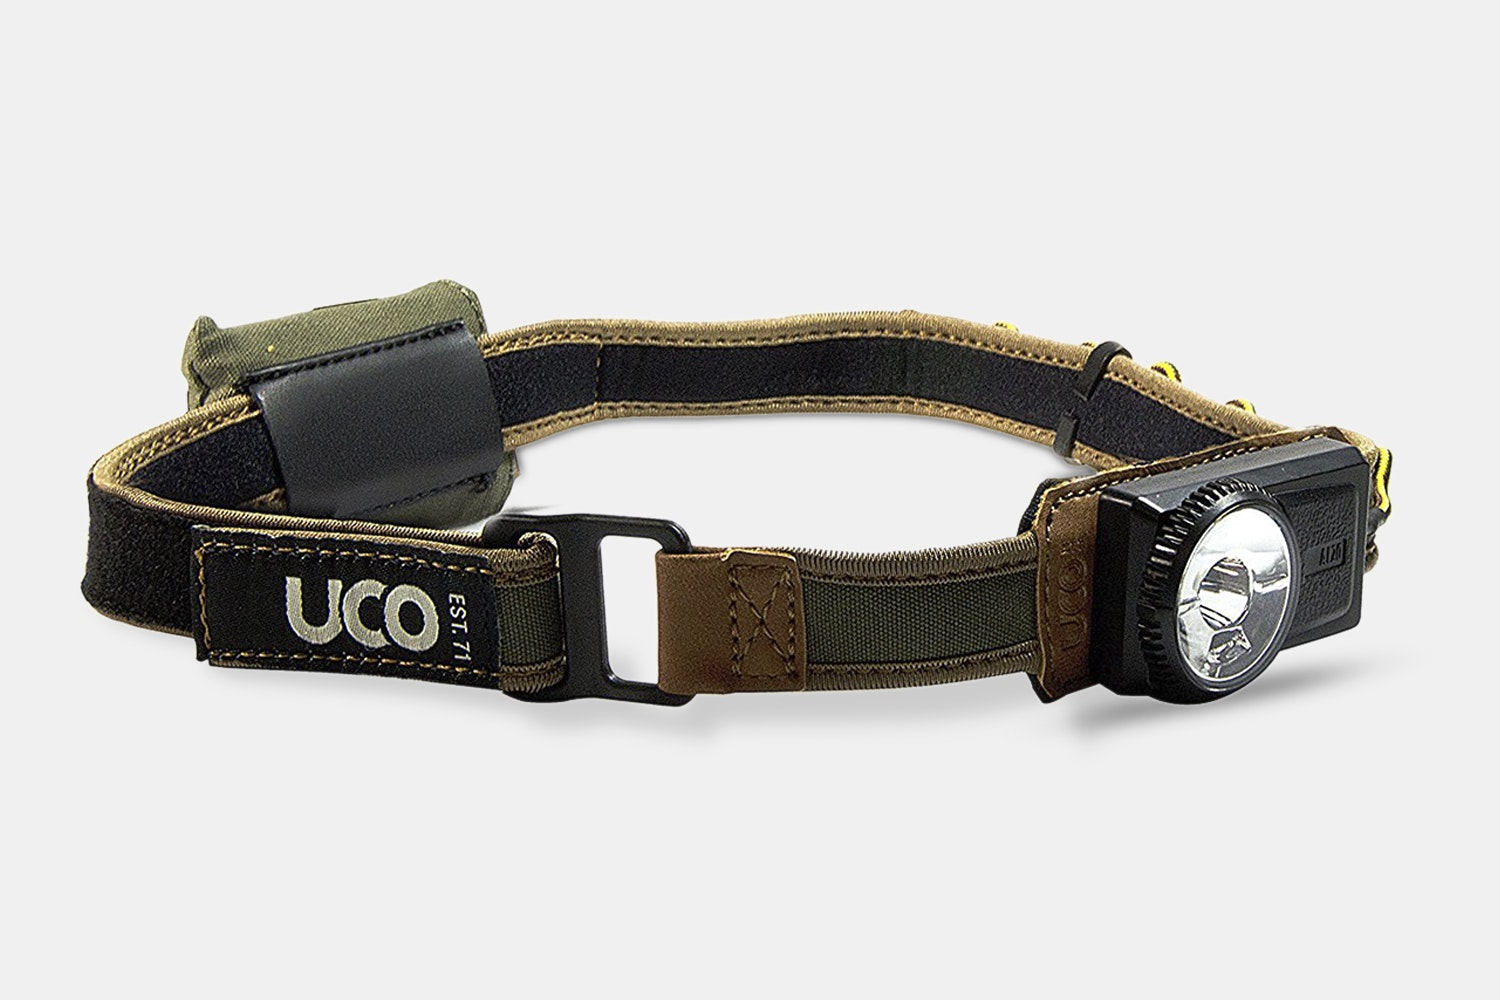 UCO A-120 Comfort-Fit Headlamp